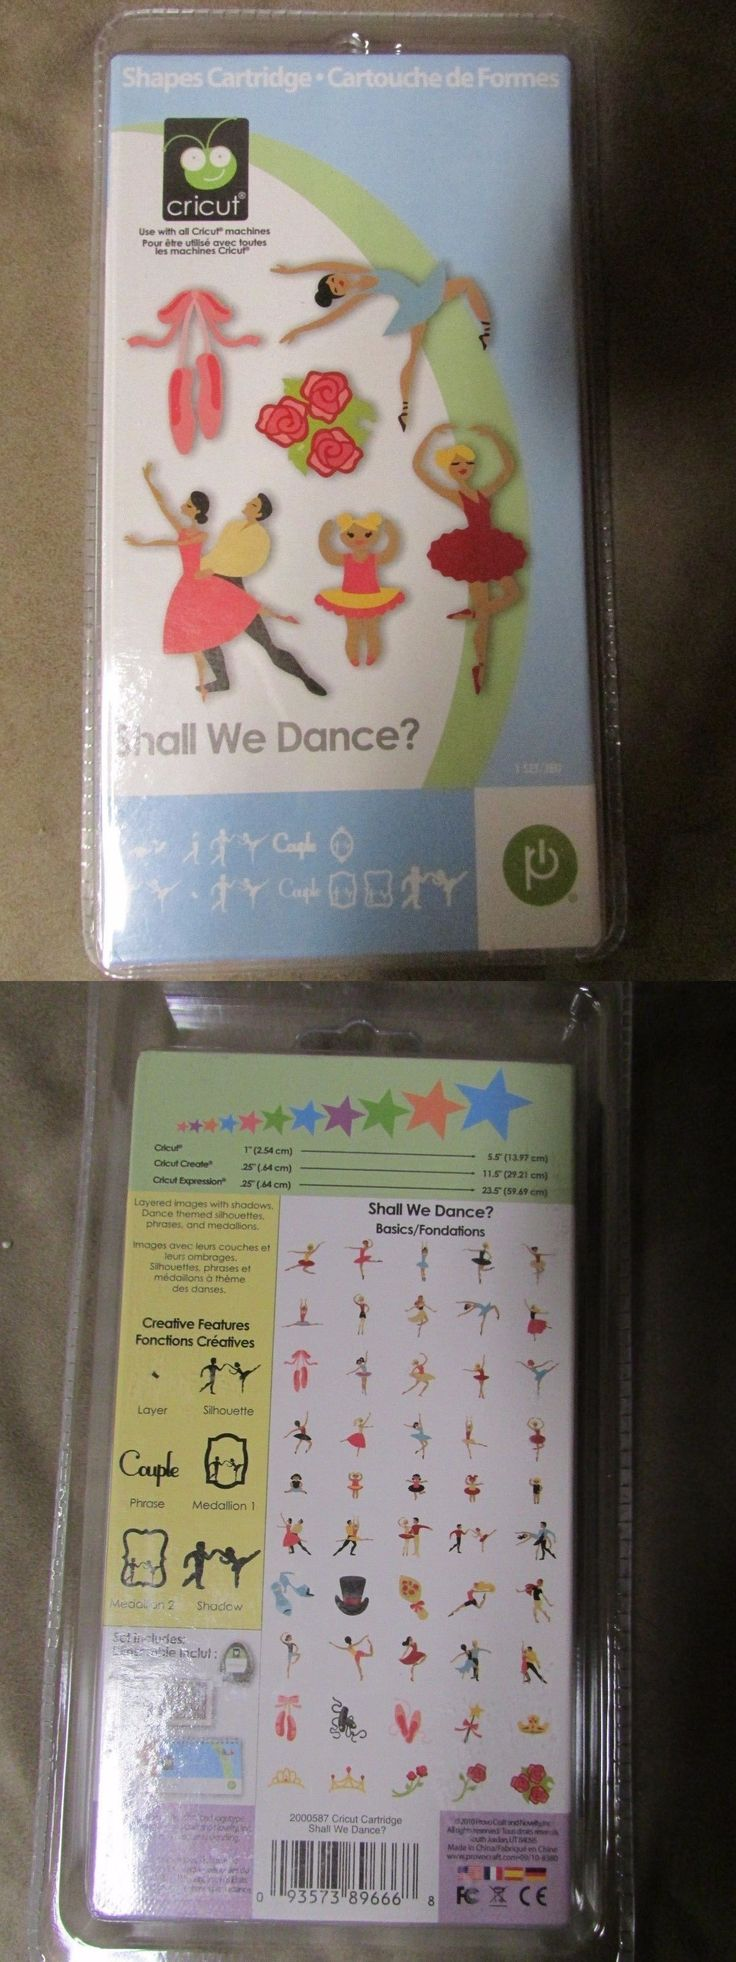 Die Cut and Embossing Machines 113344: Provo Craft, Cricut Cartridge, Shall We Dance, New In Package! Rare! -> BUY IT NOW ONLY: $99.99 on eBay!